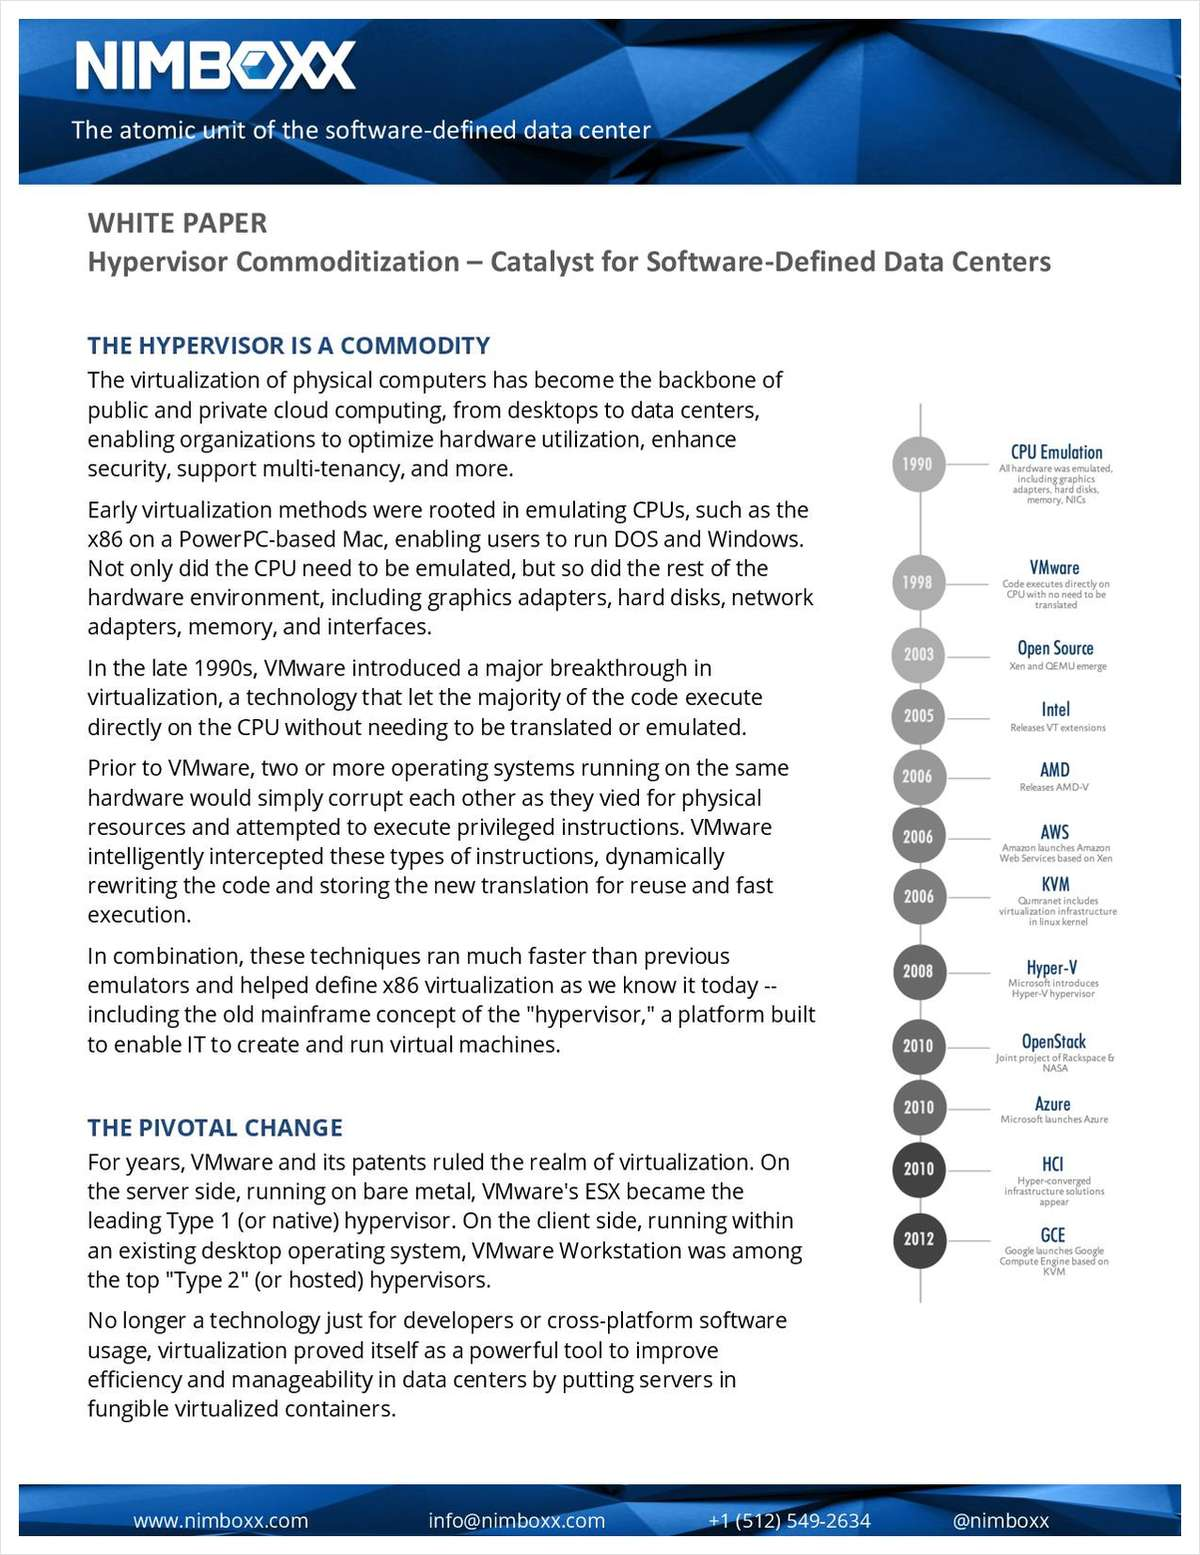 Hypervisor Commoditization: Catalyst for Software-Defined Data Centers